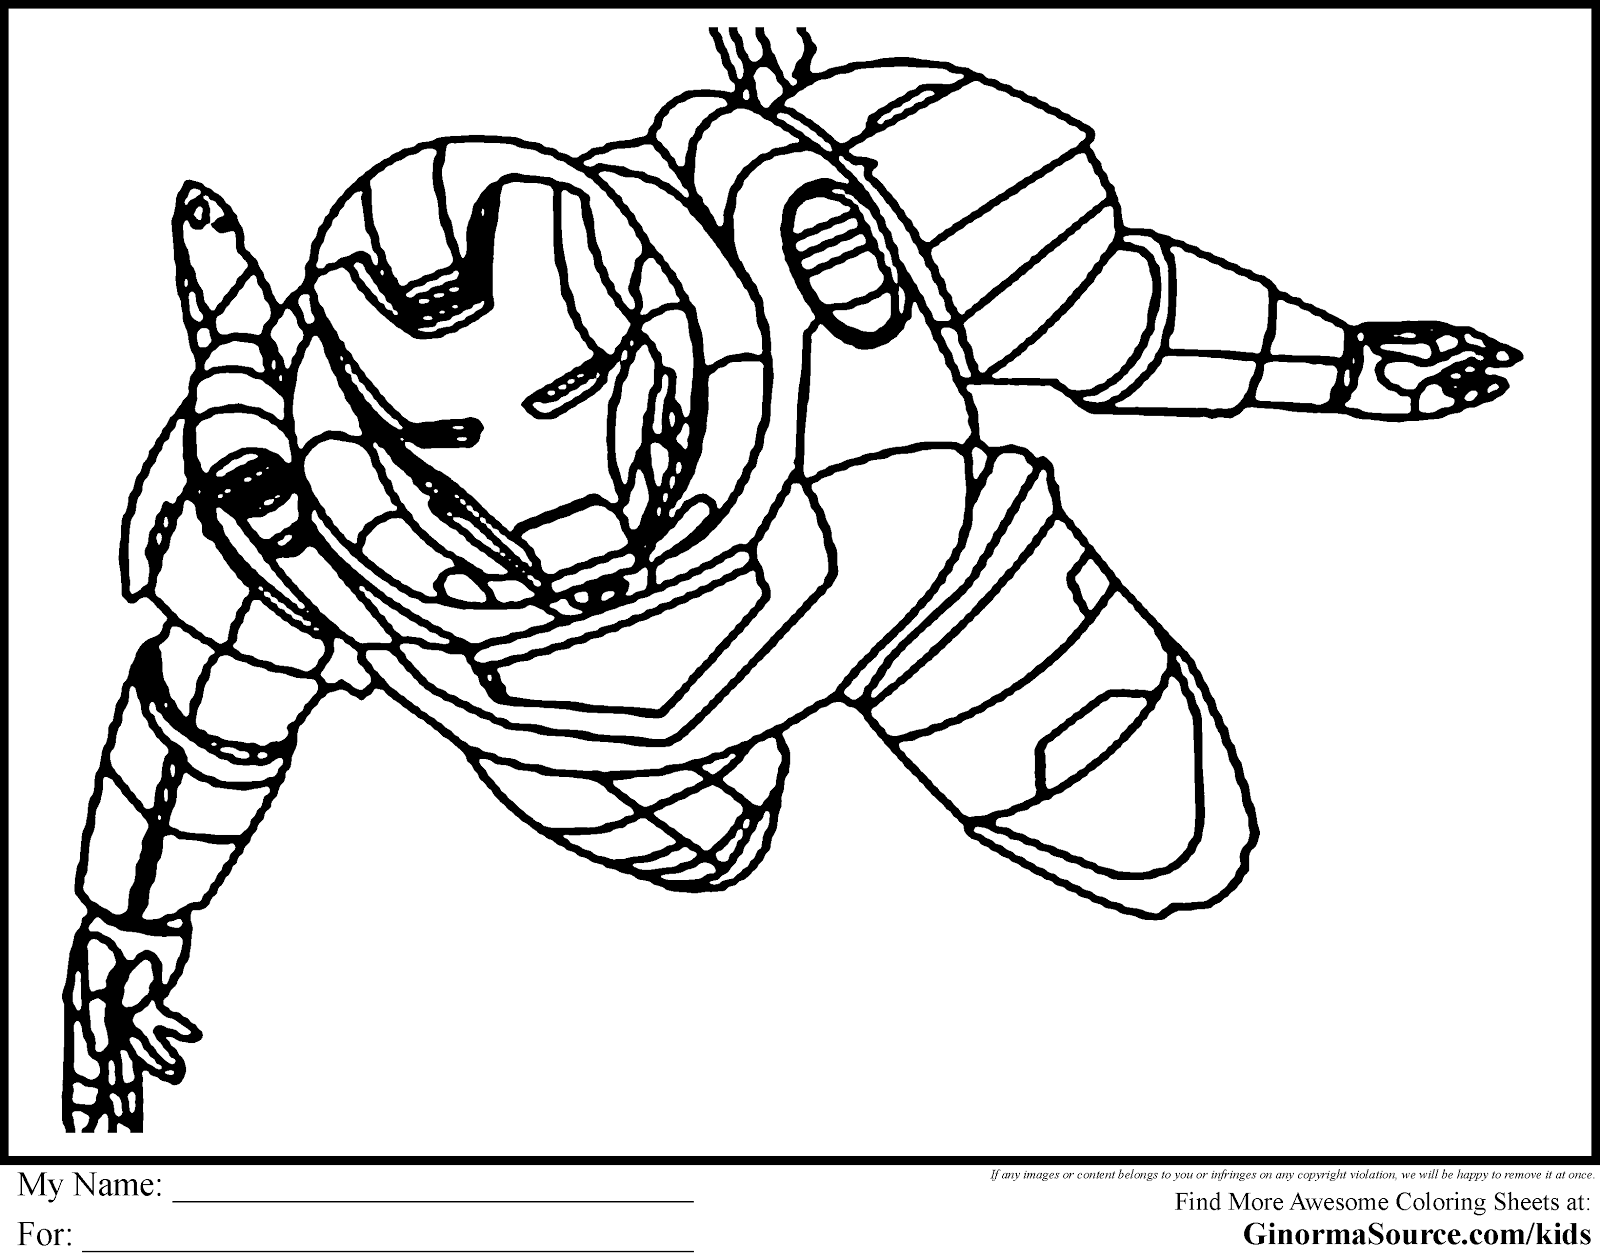 Download Avenger Coloring Pages